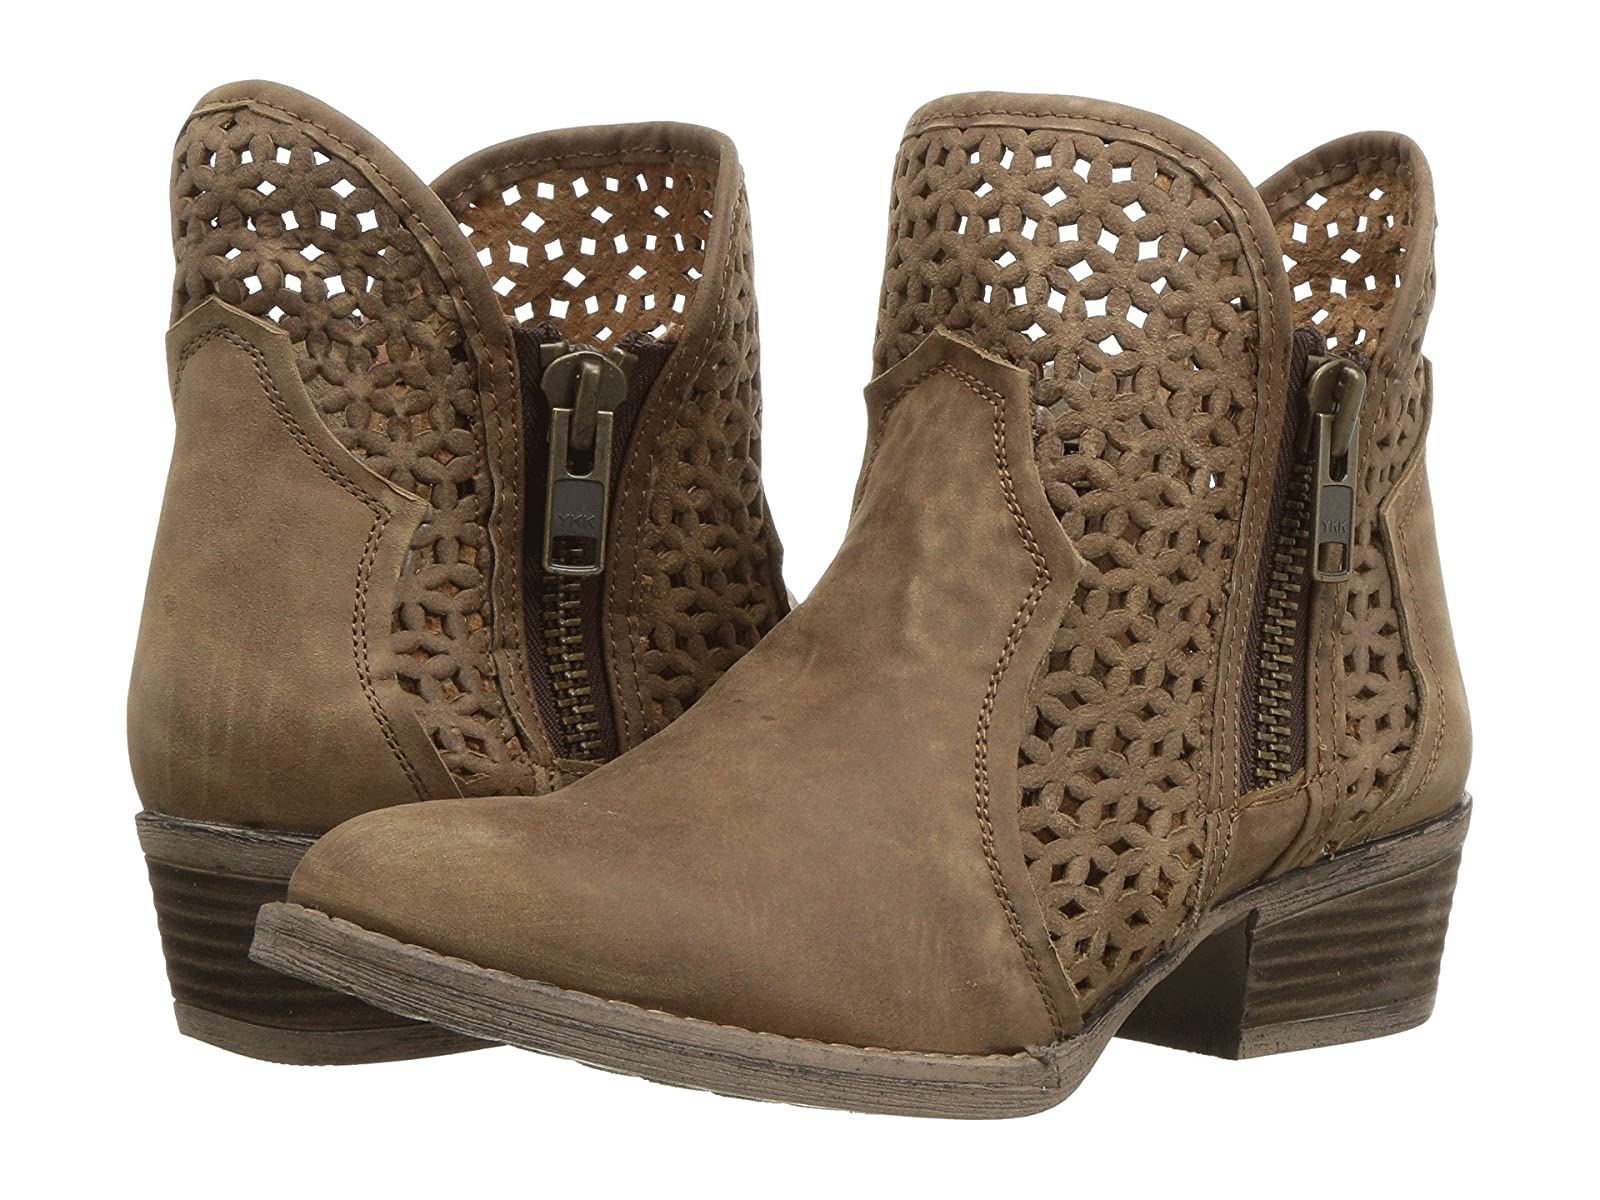 Corral Boots Q5020Affordable and distinctive shoes